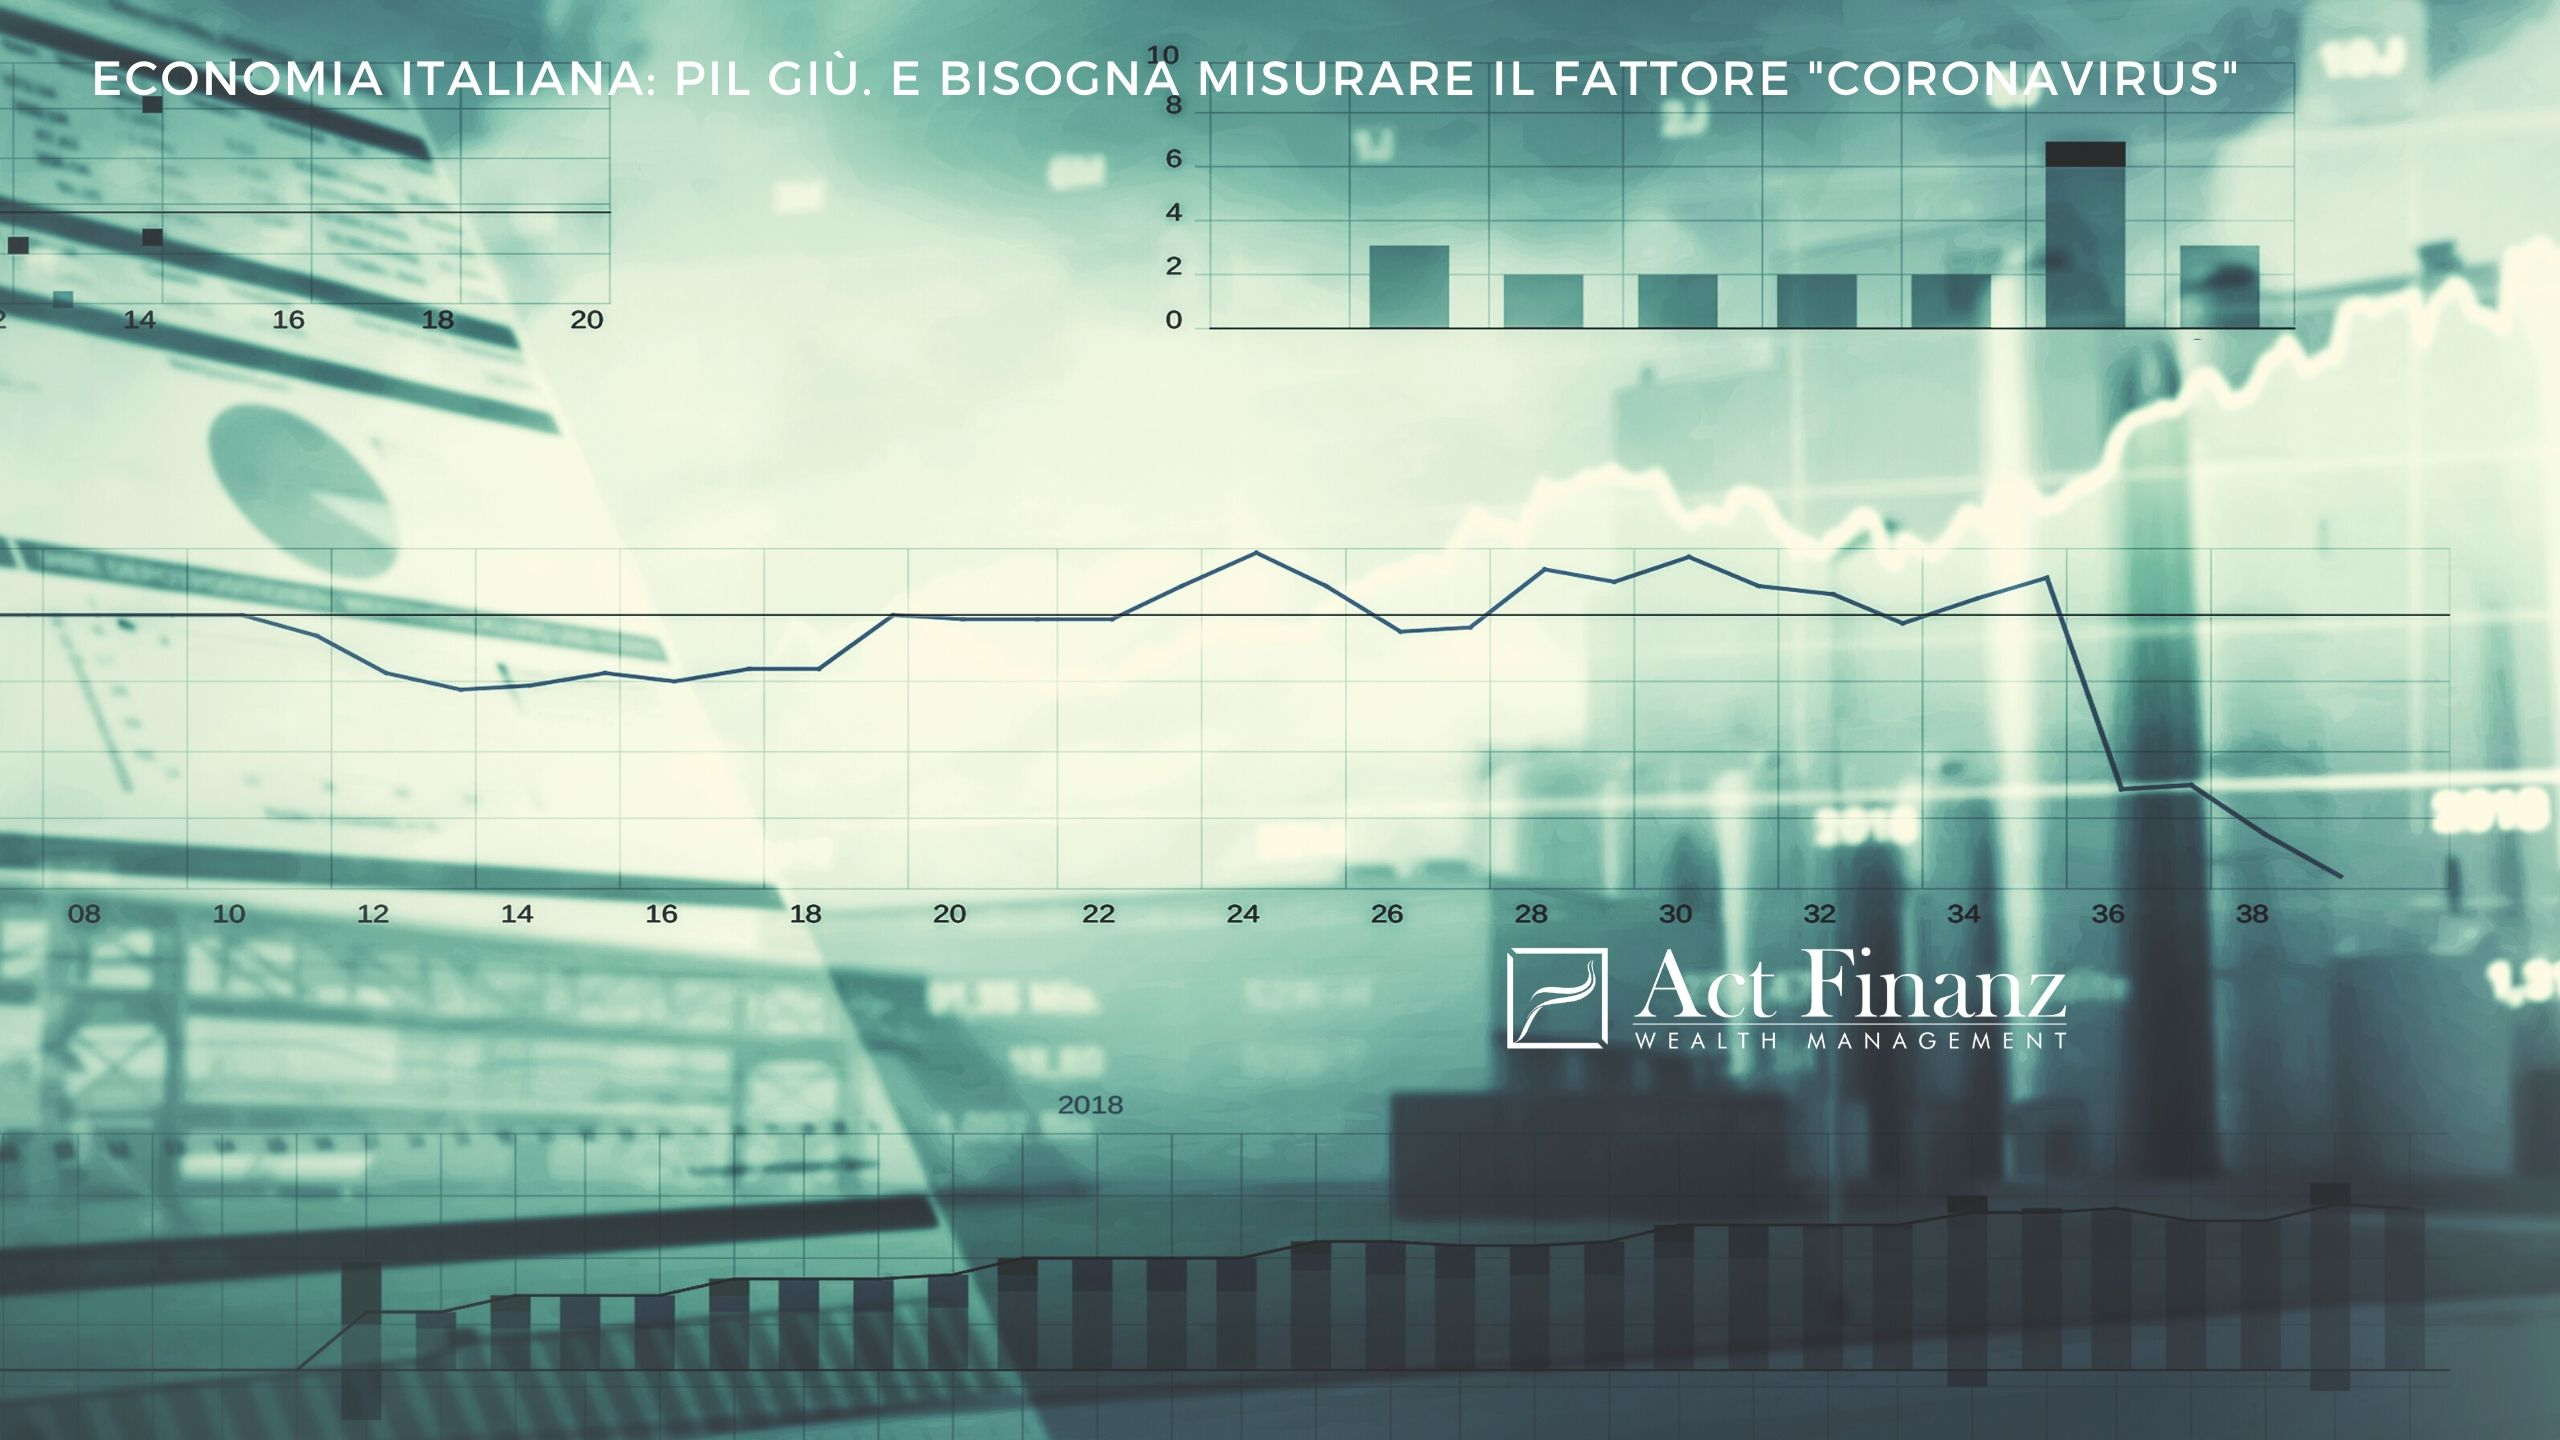 ACT Finanz - Gestori Patrimoniali Svizzera - Wealth Management Switzerland -